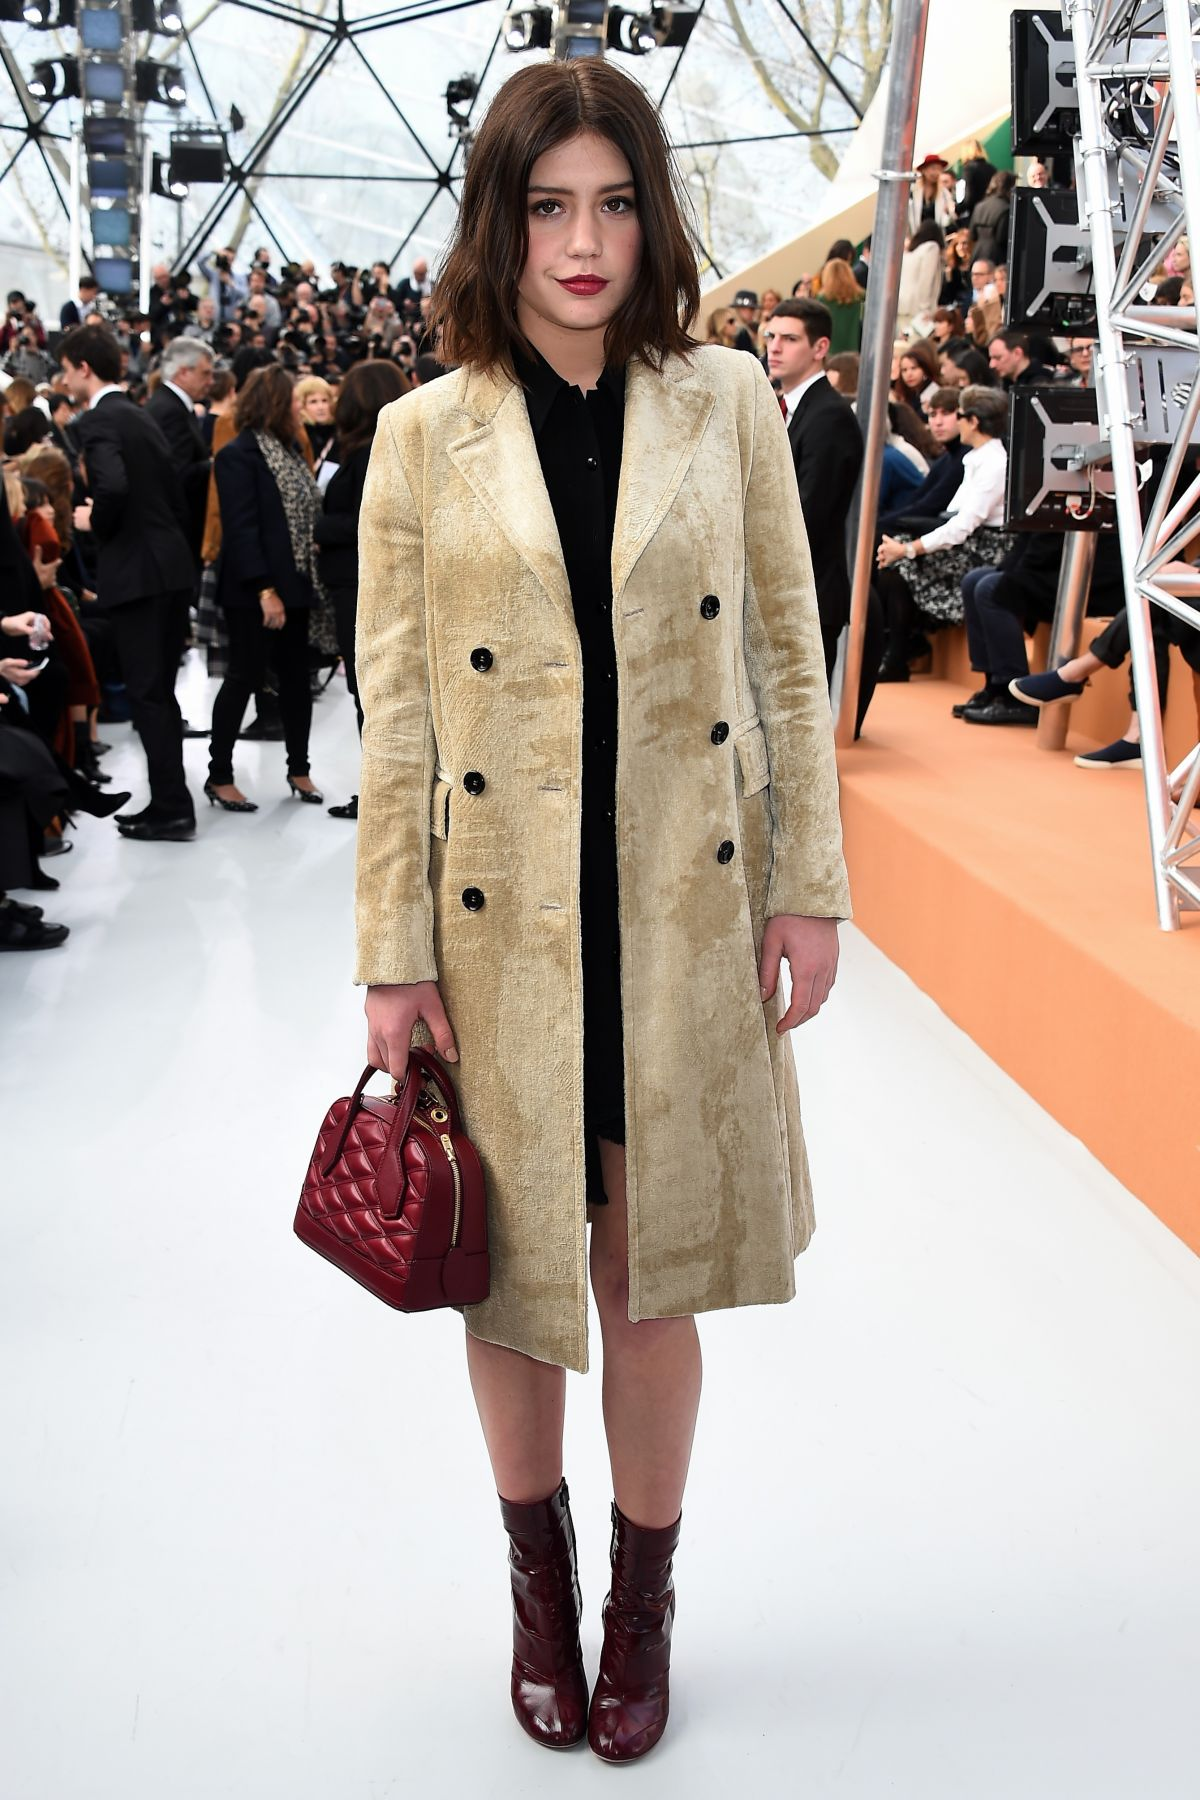 ADELE EXARCHOPOULOS at Louis Vuitton Fashion Show in Paris